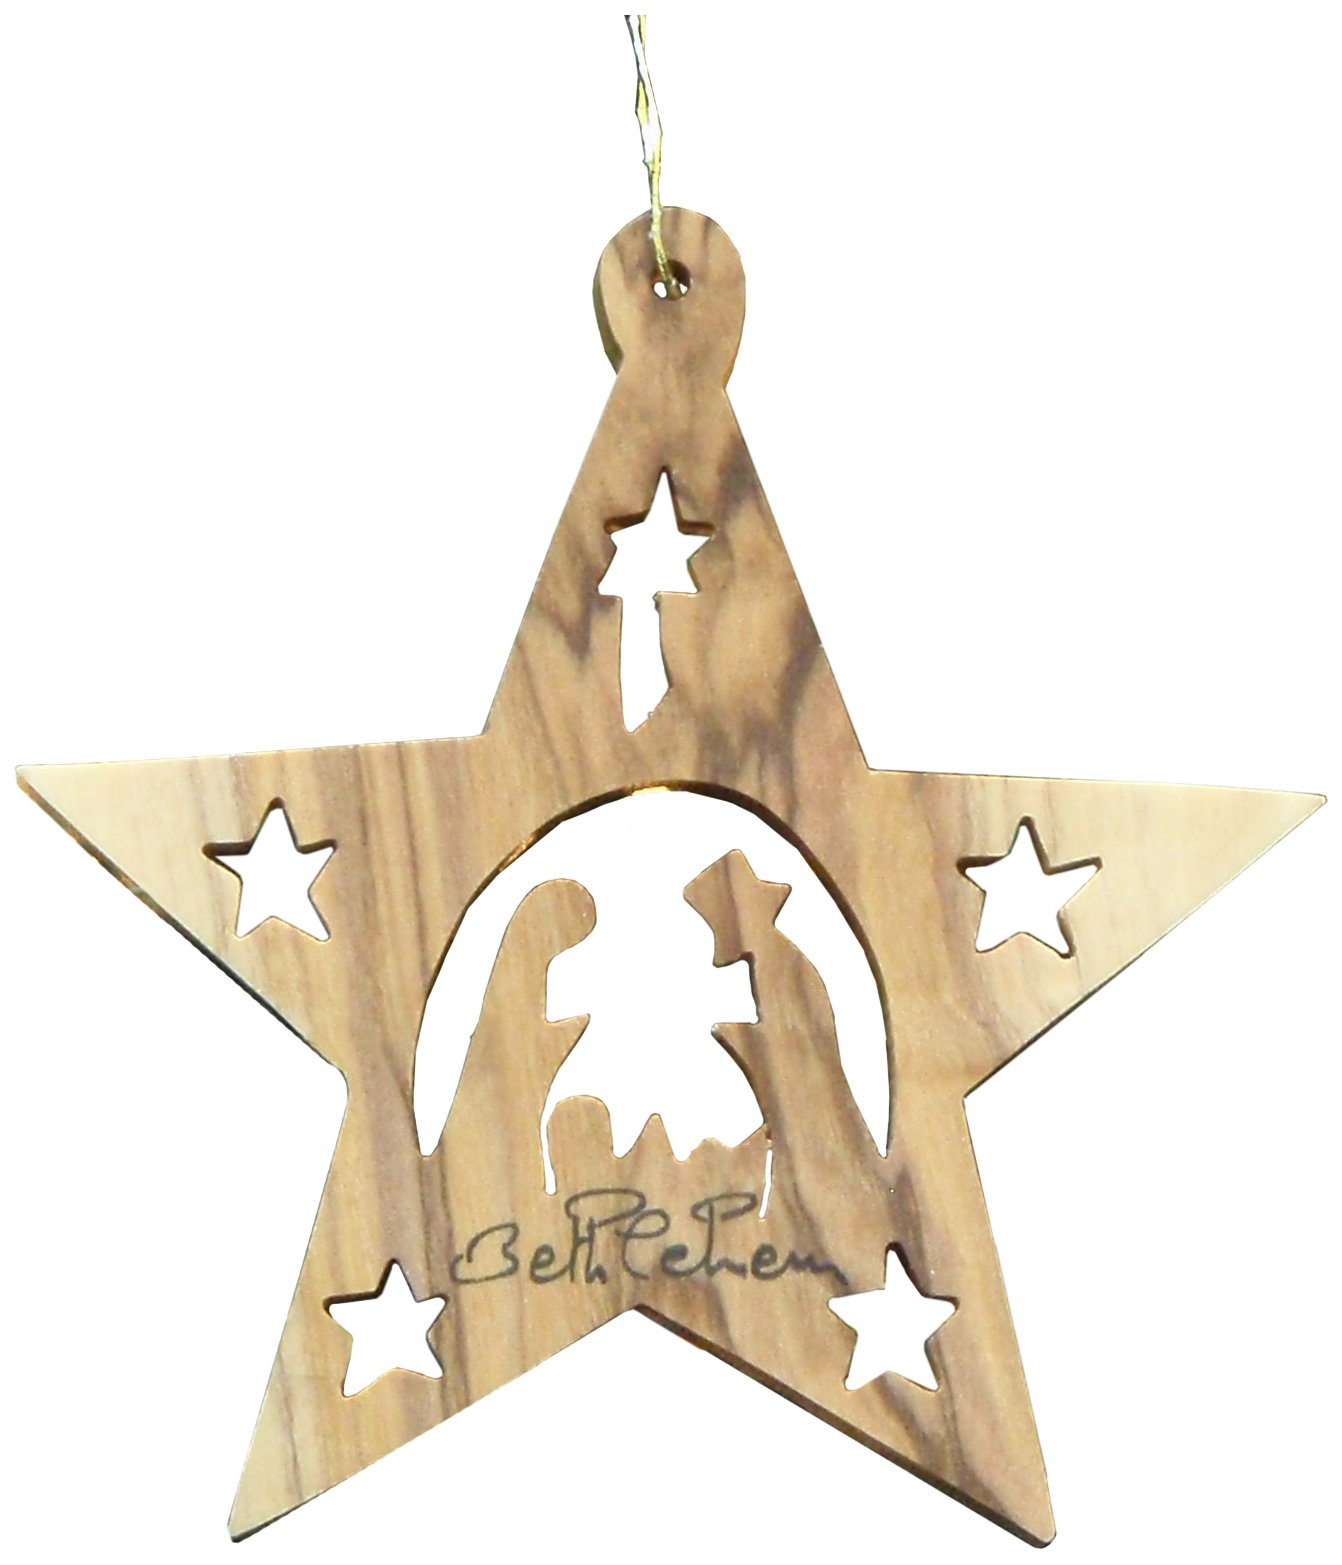 Earthwood Olive Wood Star with Nativity and Stars Ornament